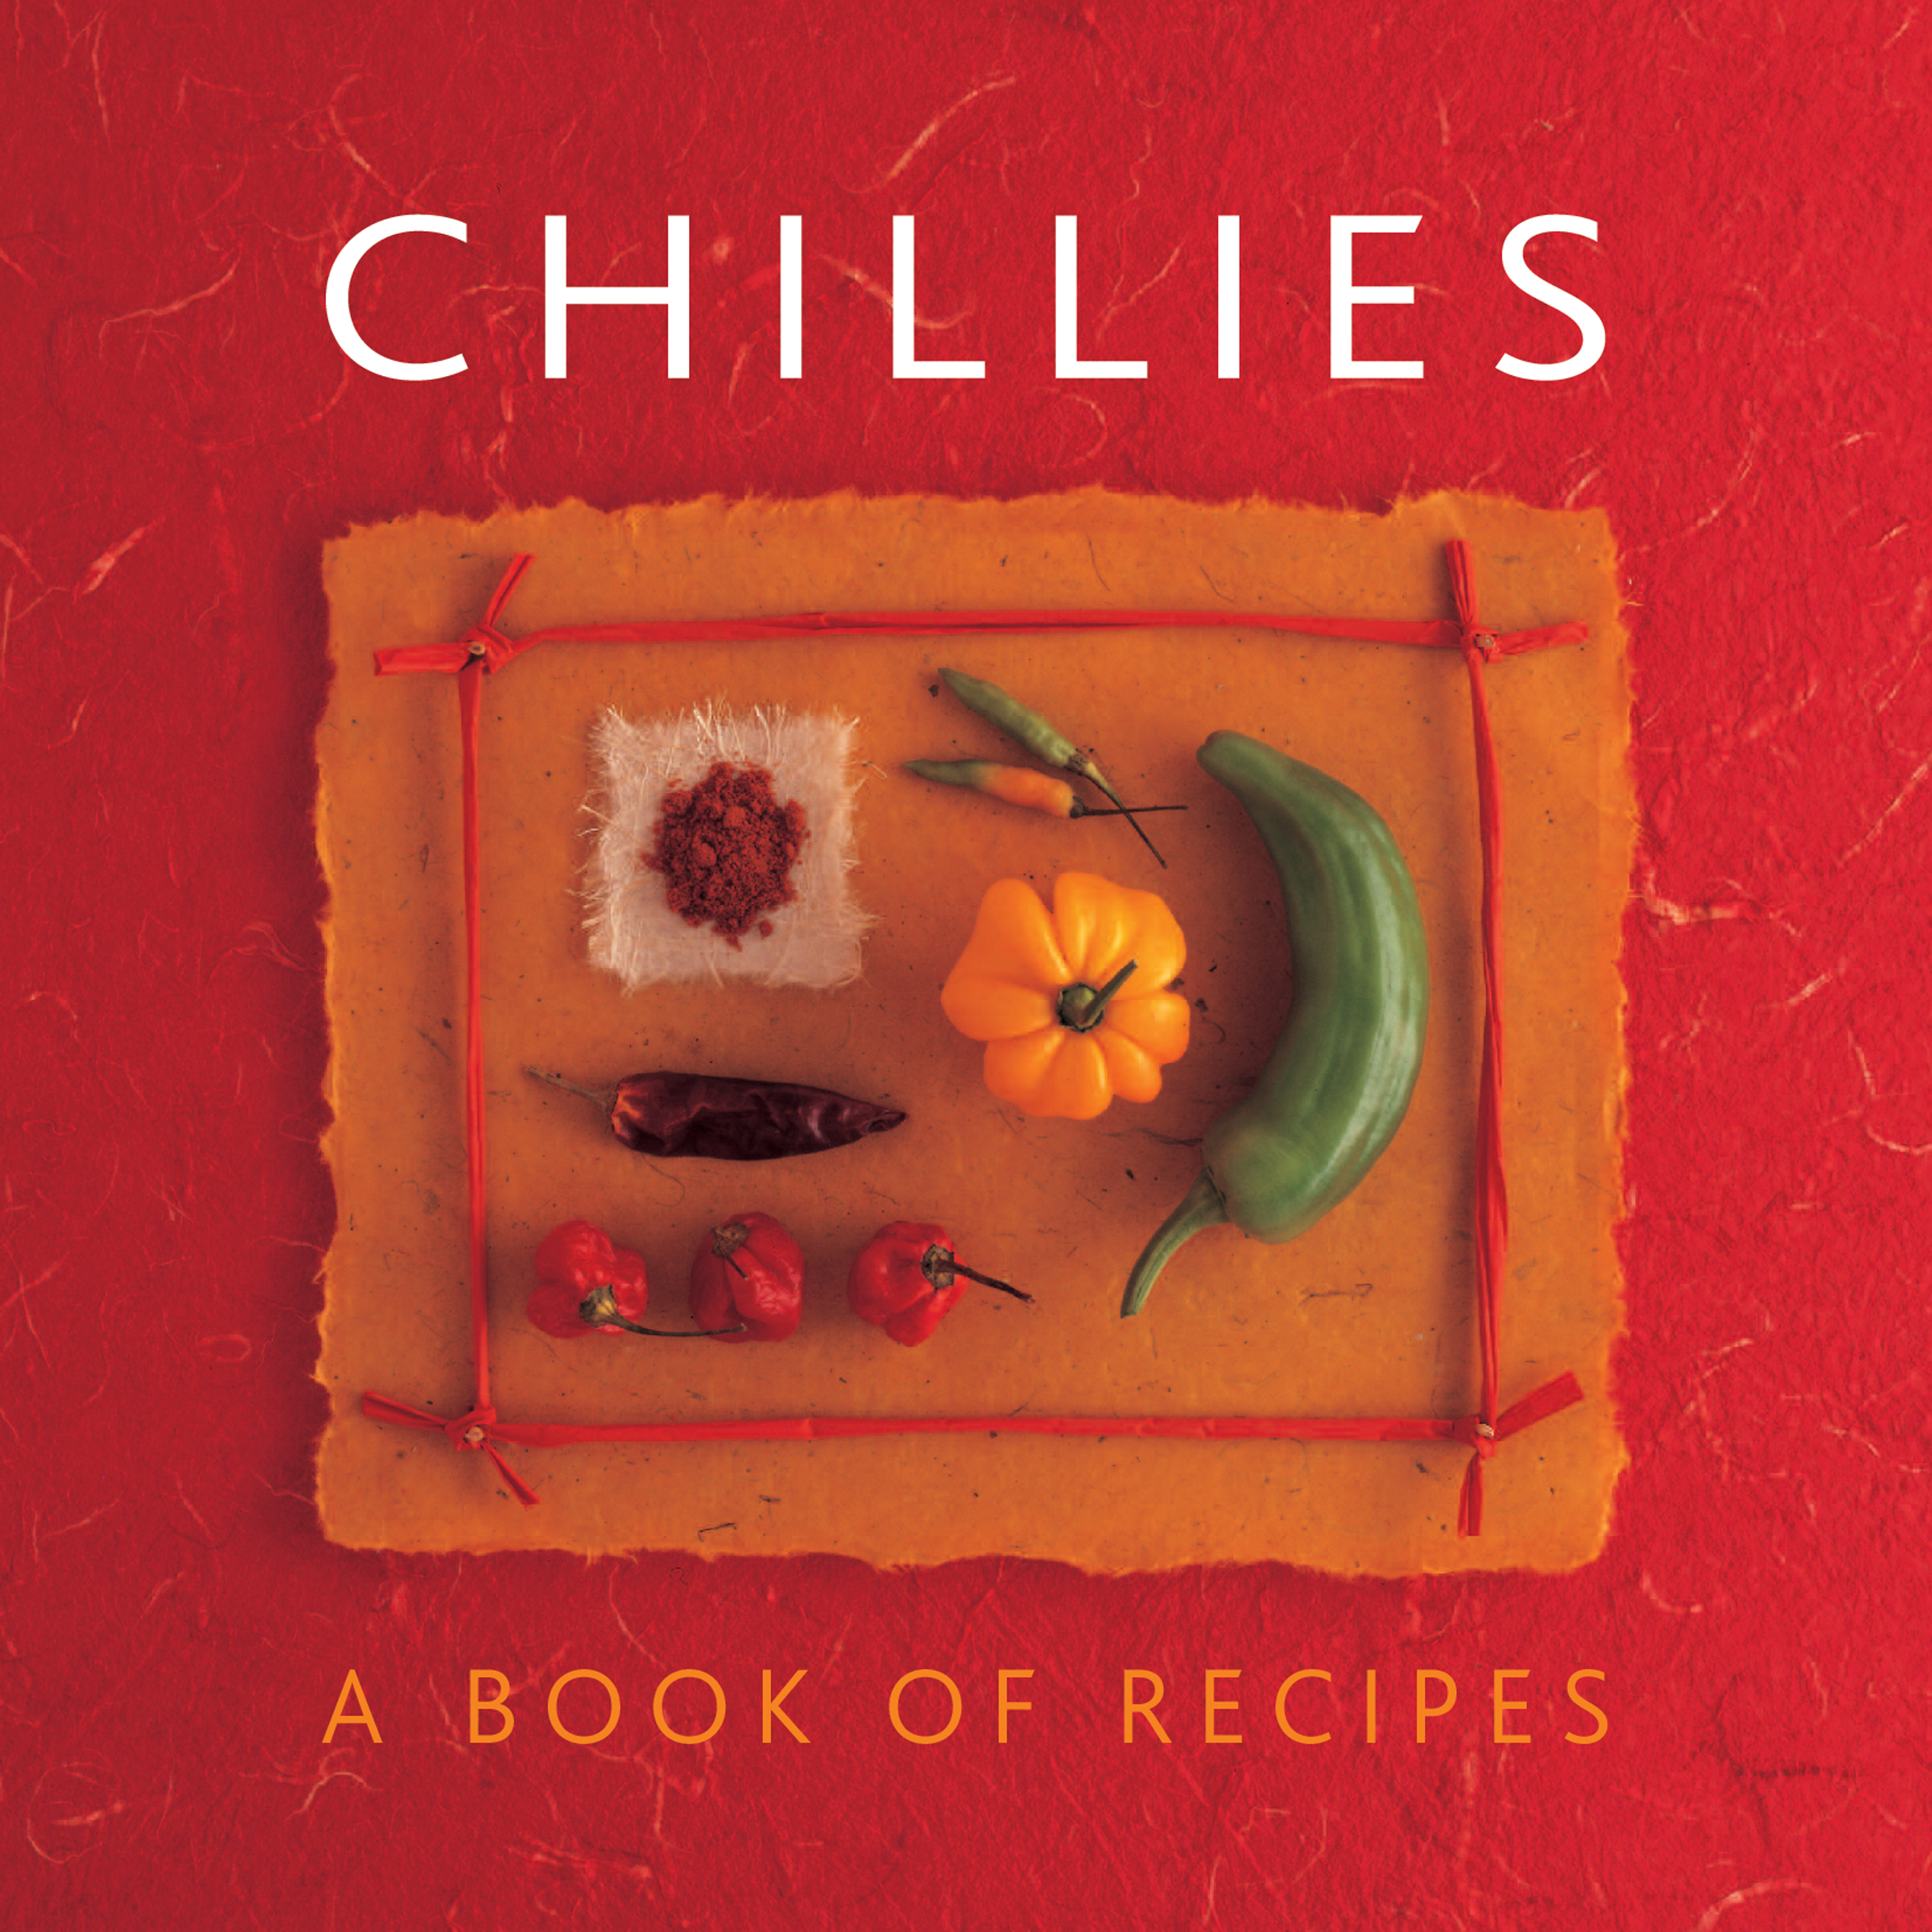 Chillies A Book of Recipes